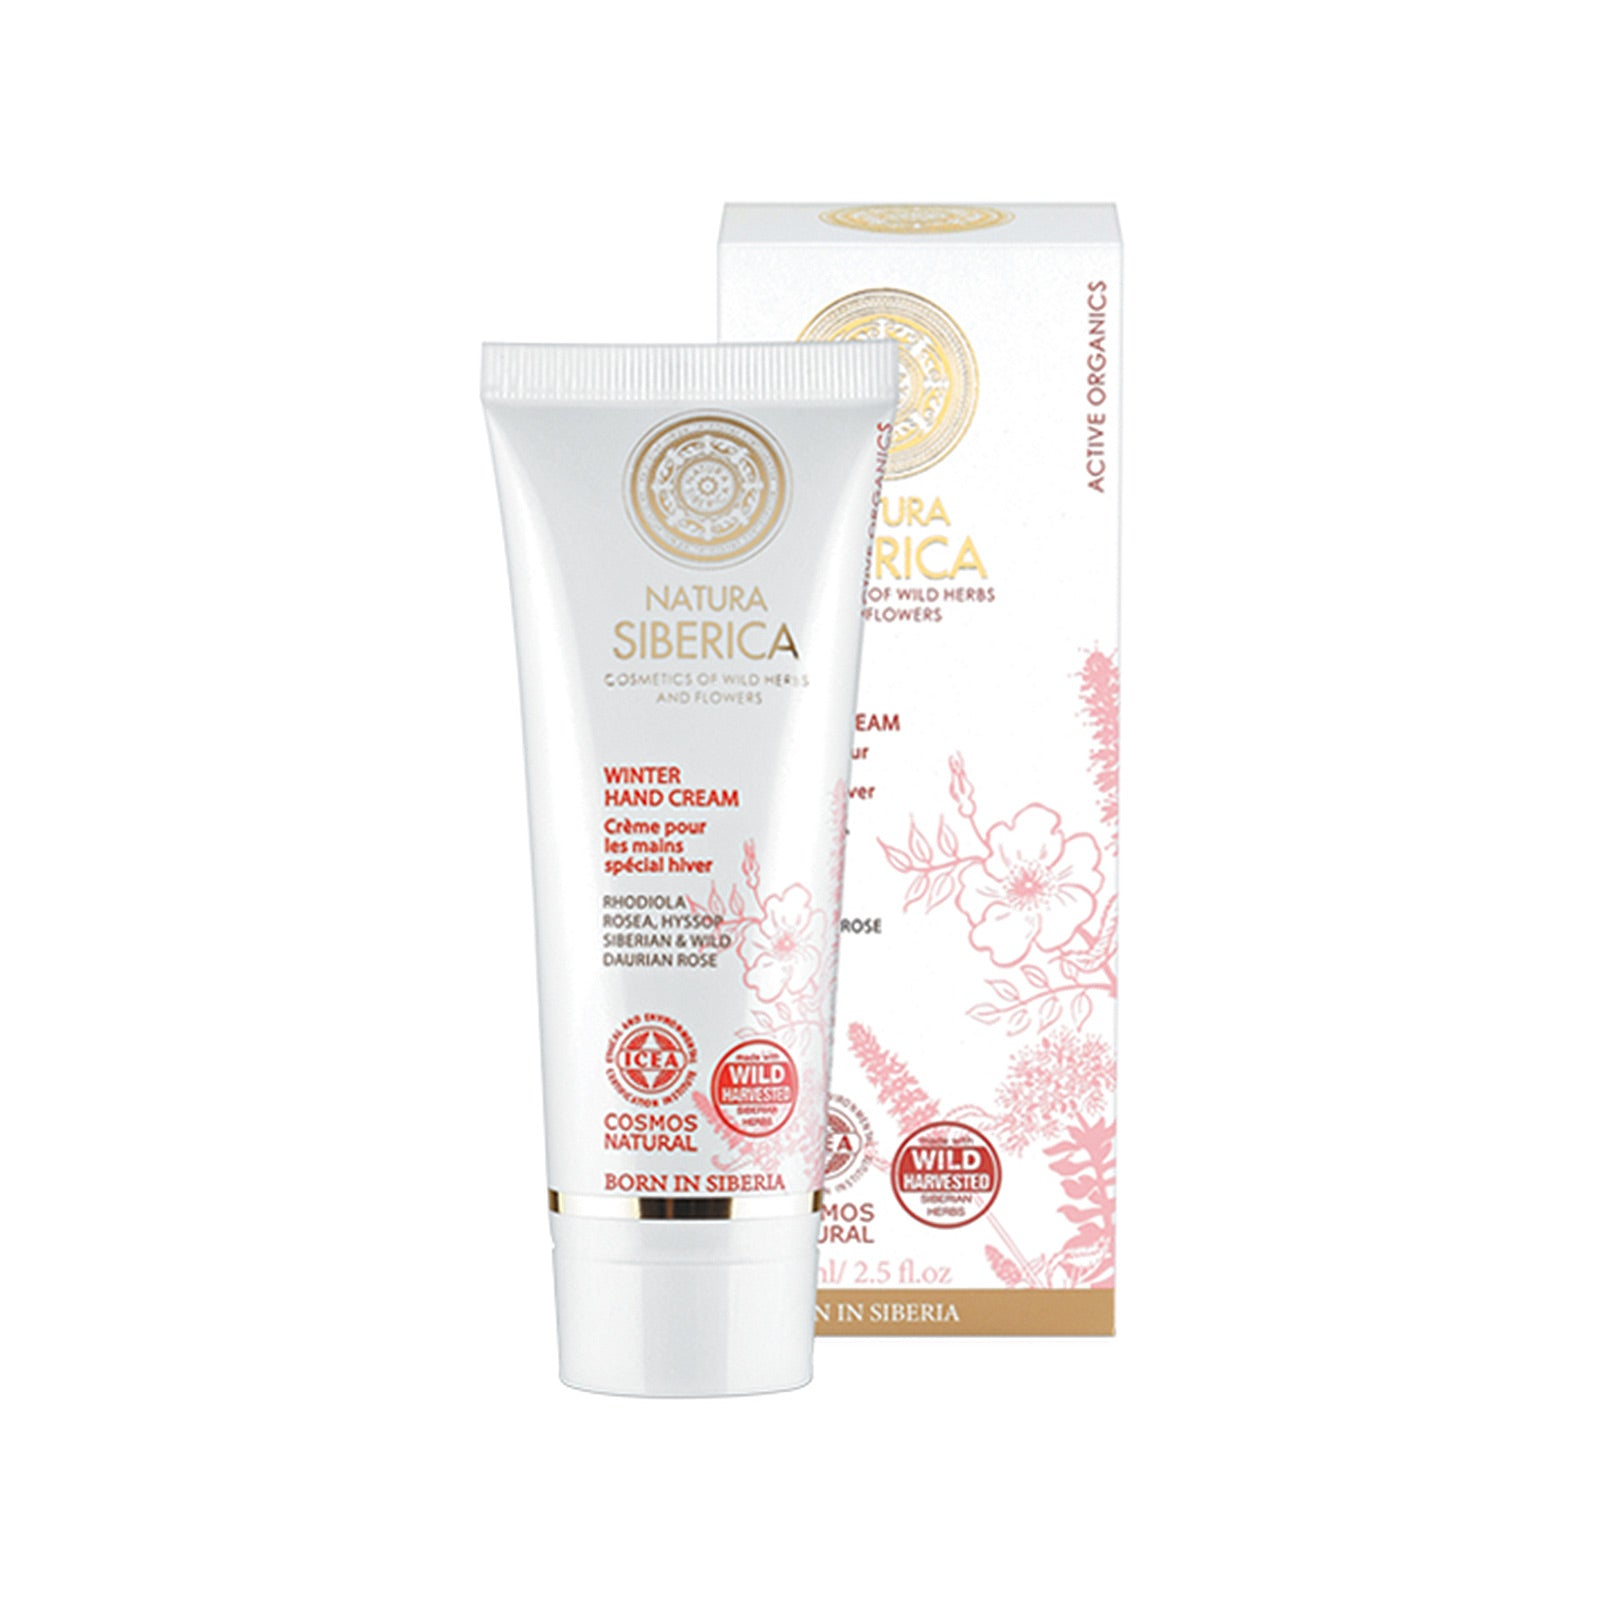 Winter Hand Cream, 75 ml